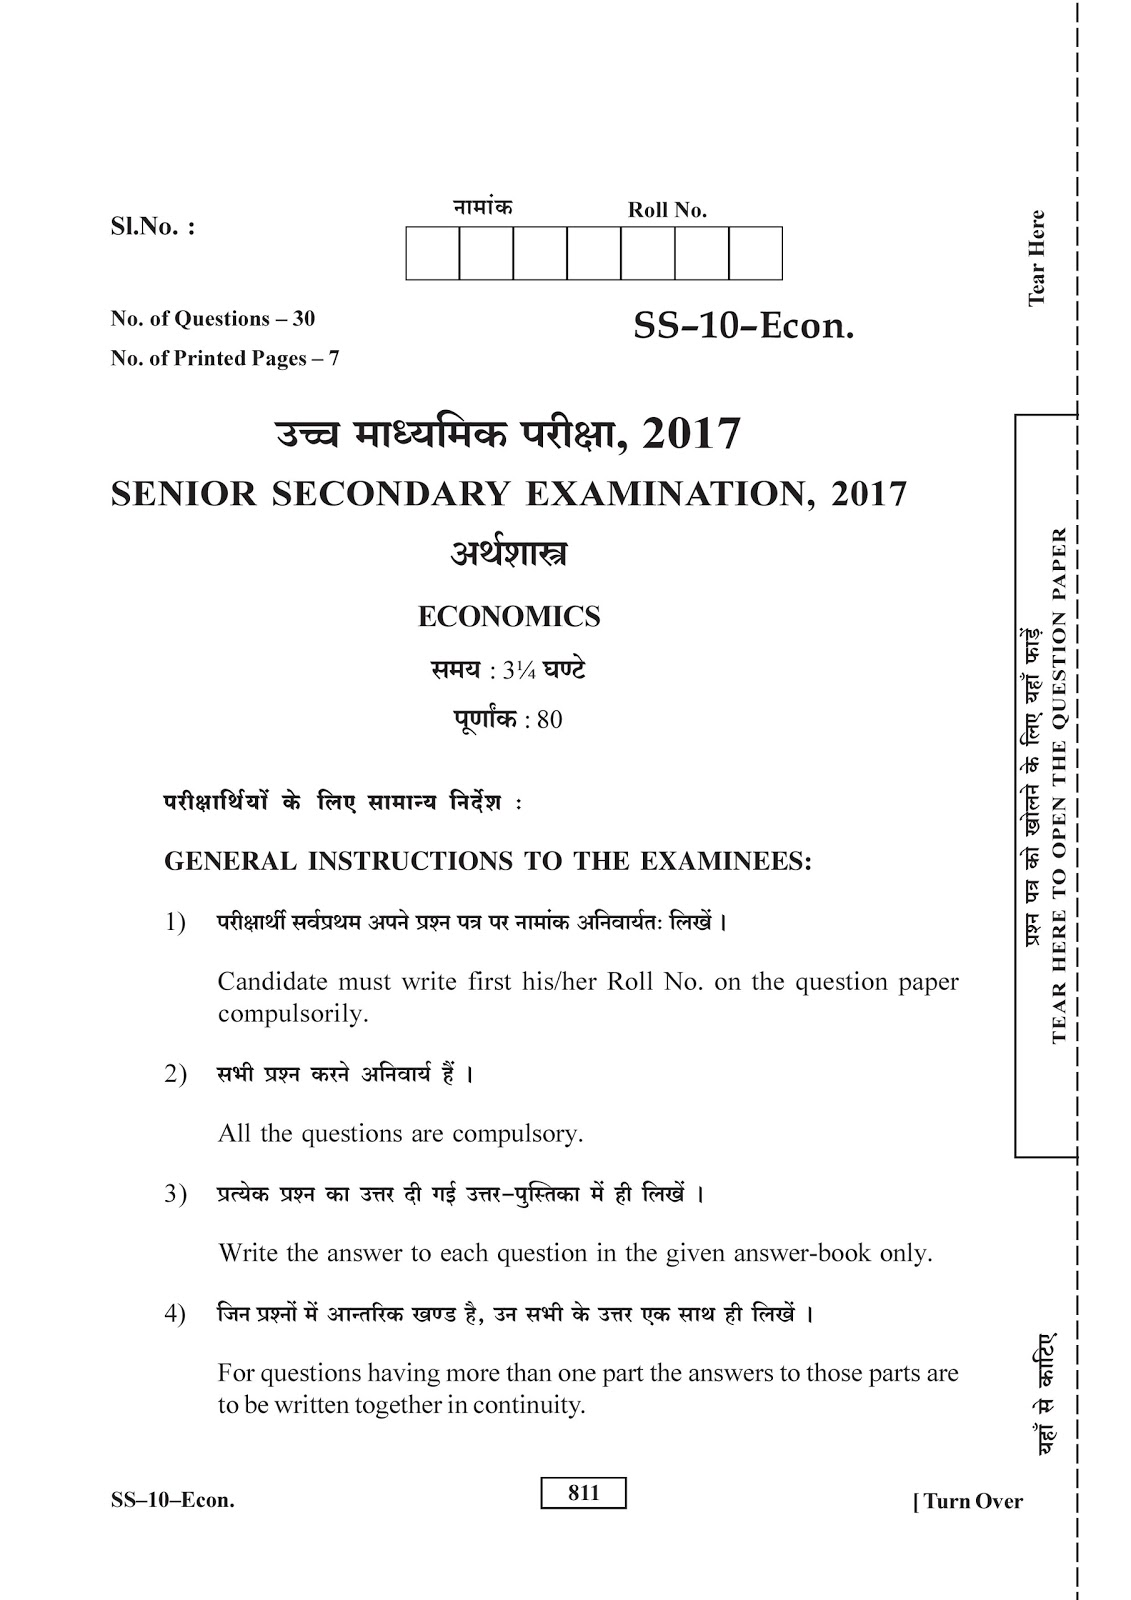 RBSE class 12th 2017 Economics question paper